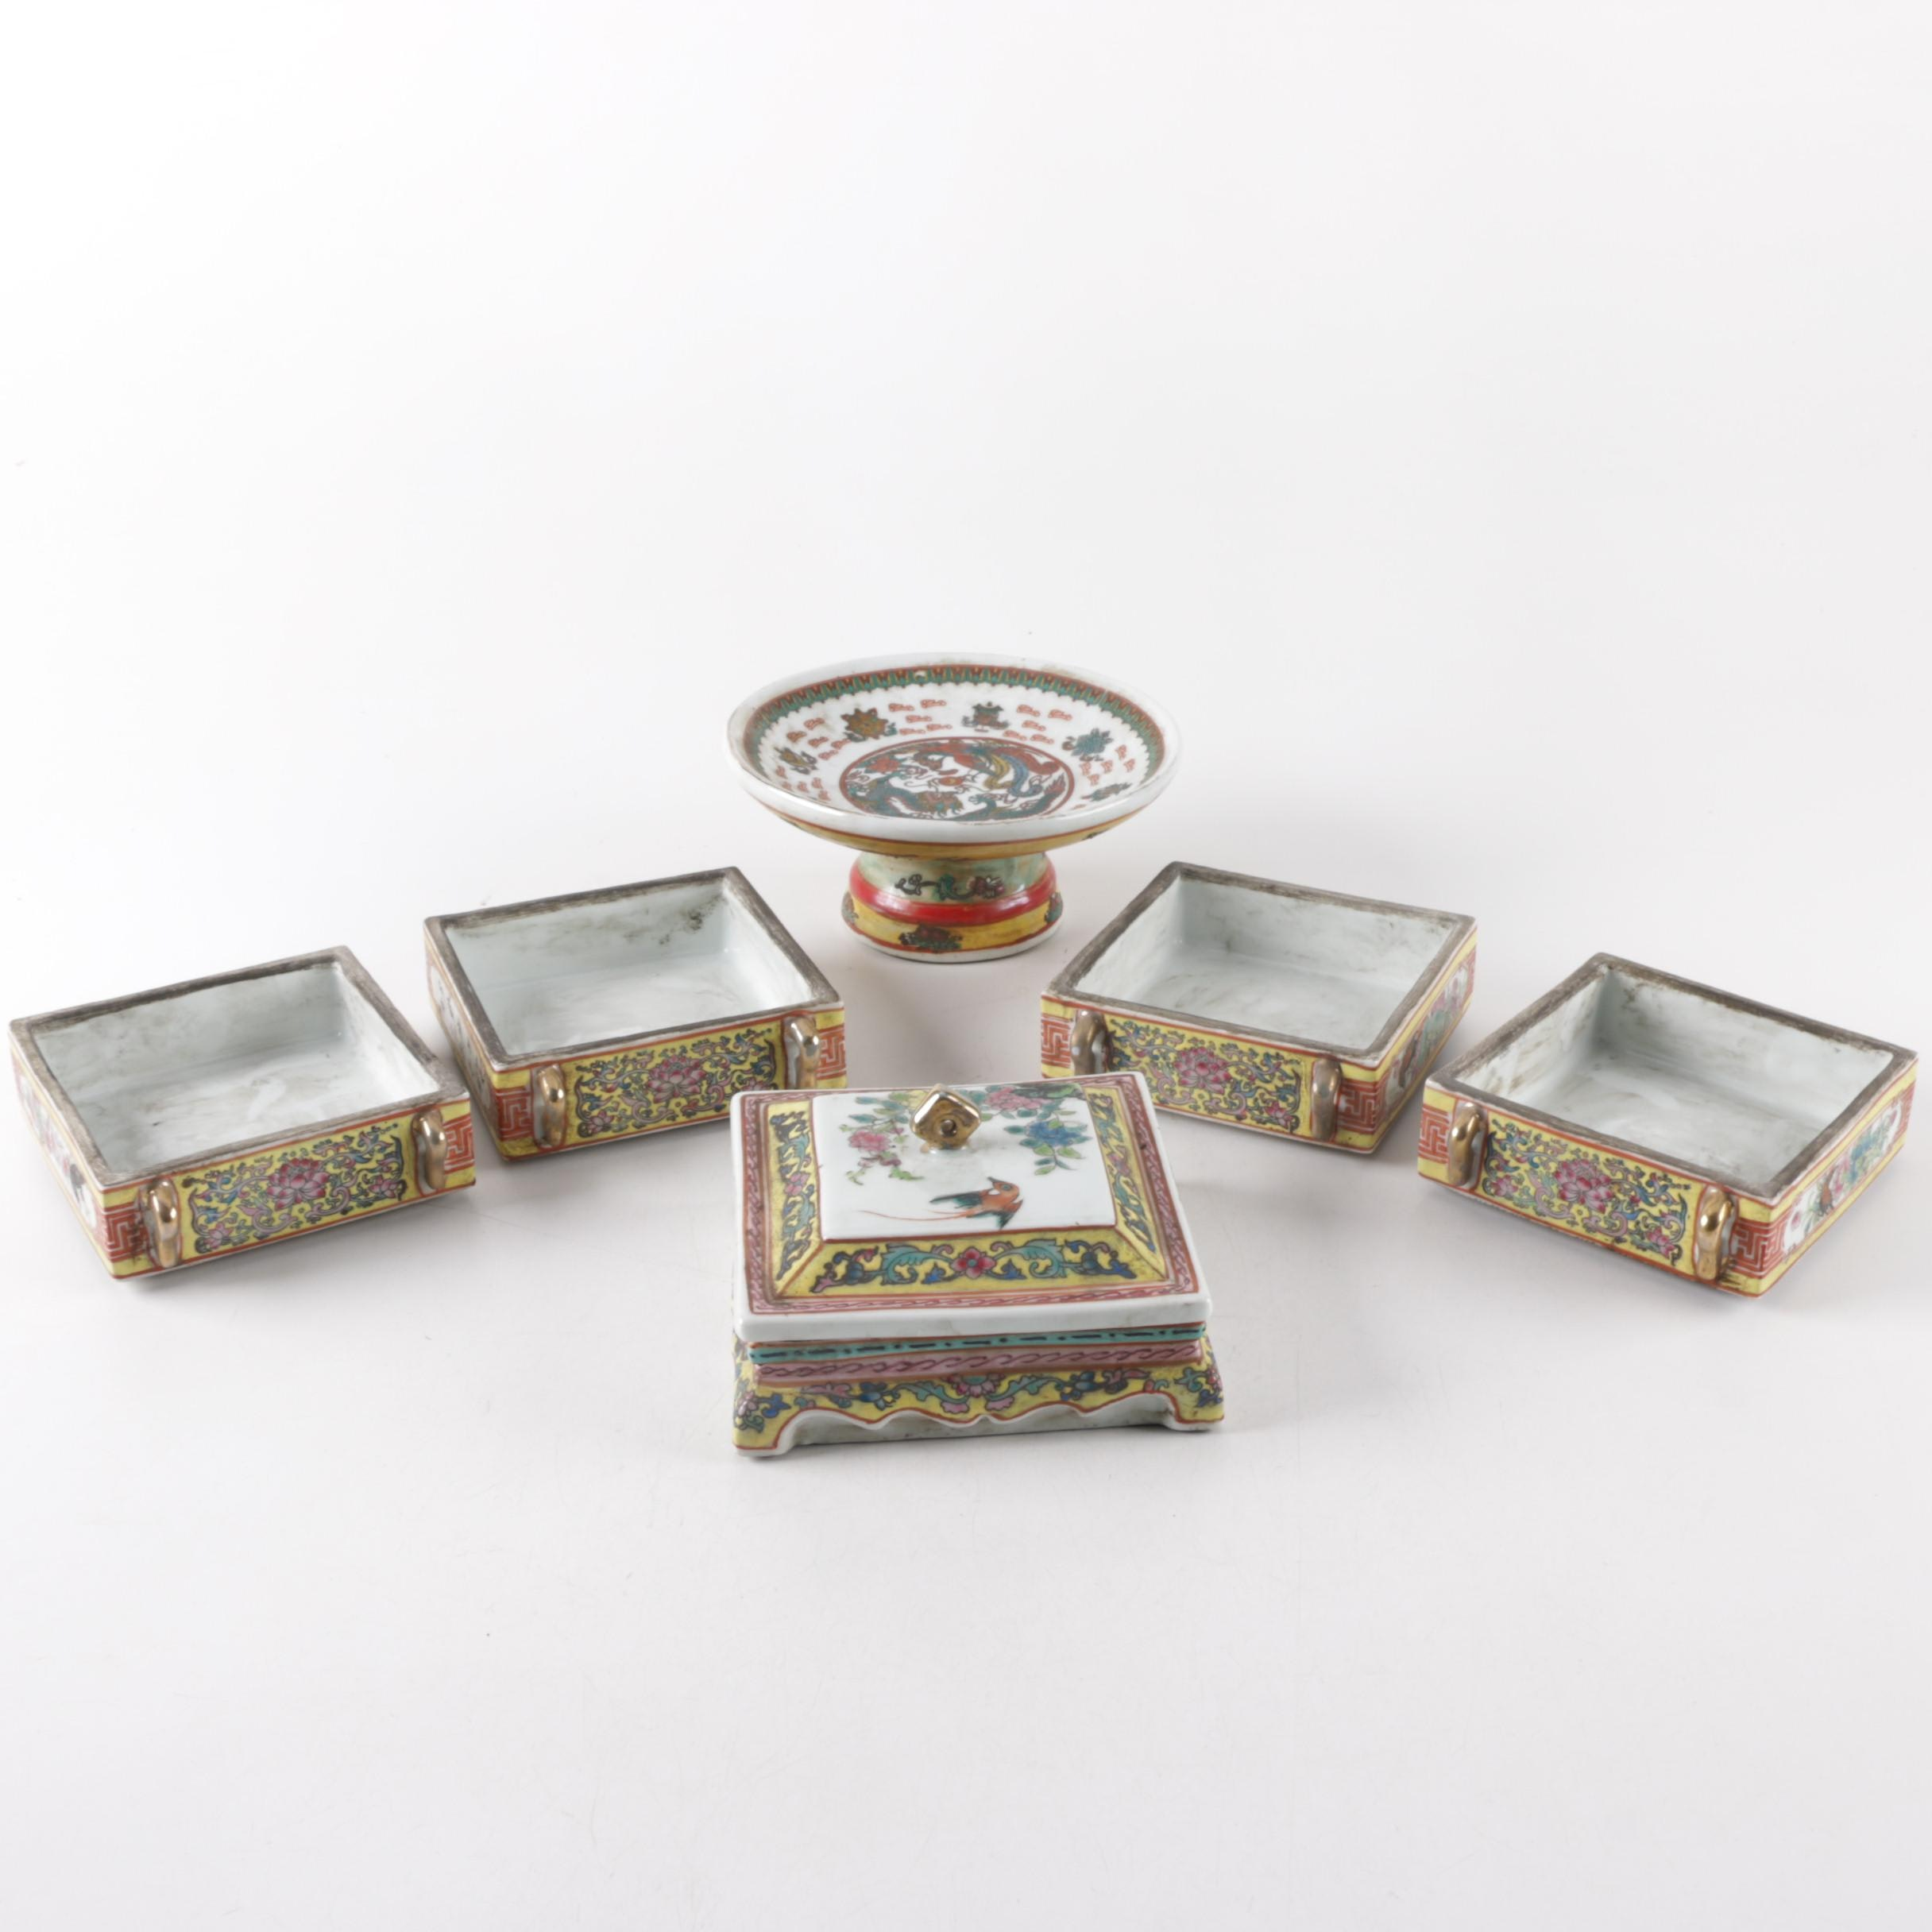 Chinese Ceramic Stacking Boxes with Compote